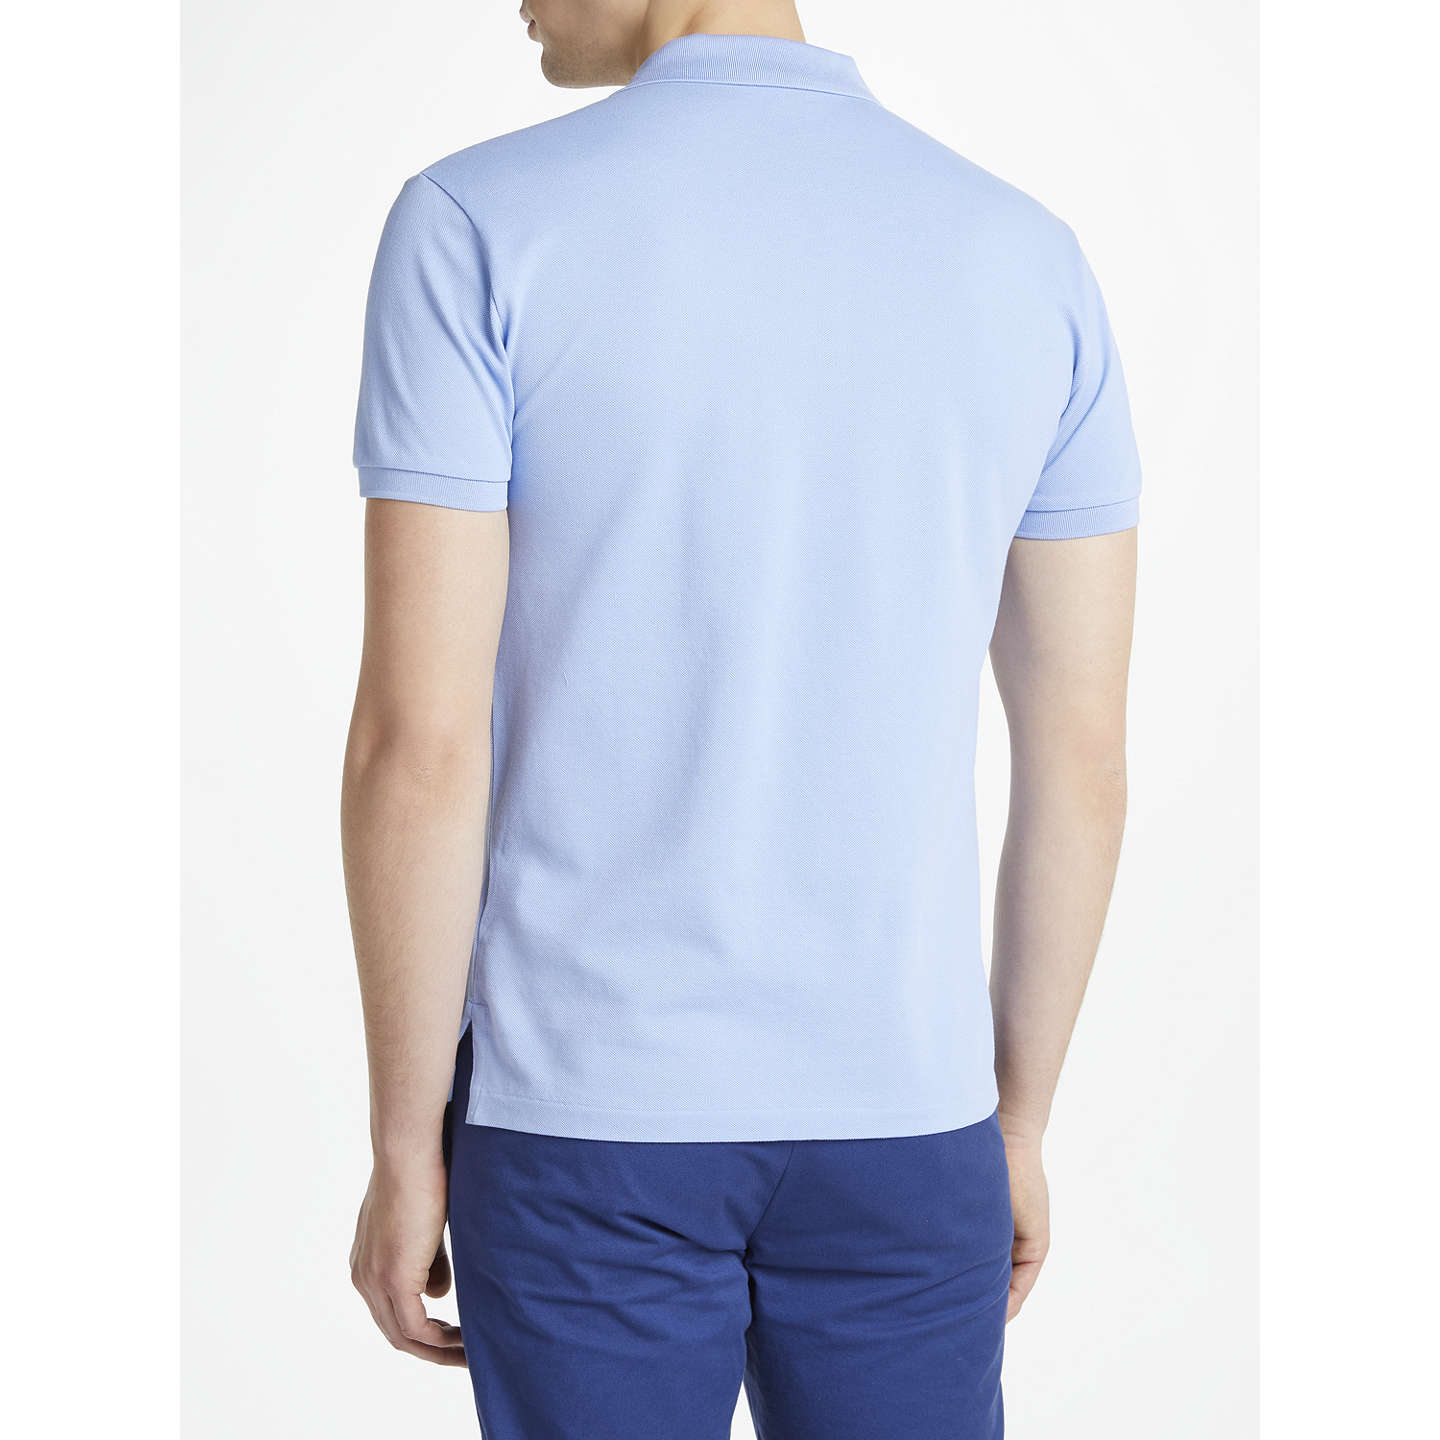 ... BuyPolo Ralph Lauren Slim Fit Stretch Mesh Polo Shirt, Dress Shirt  Blue, S Online ...